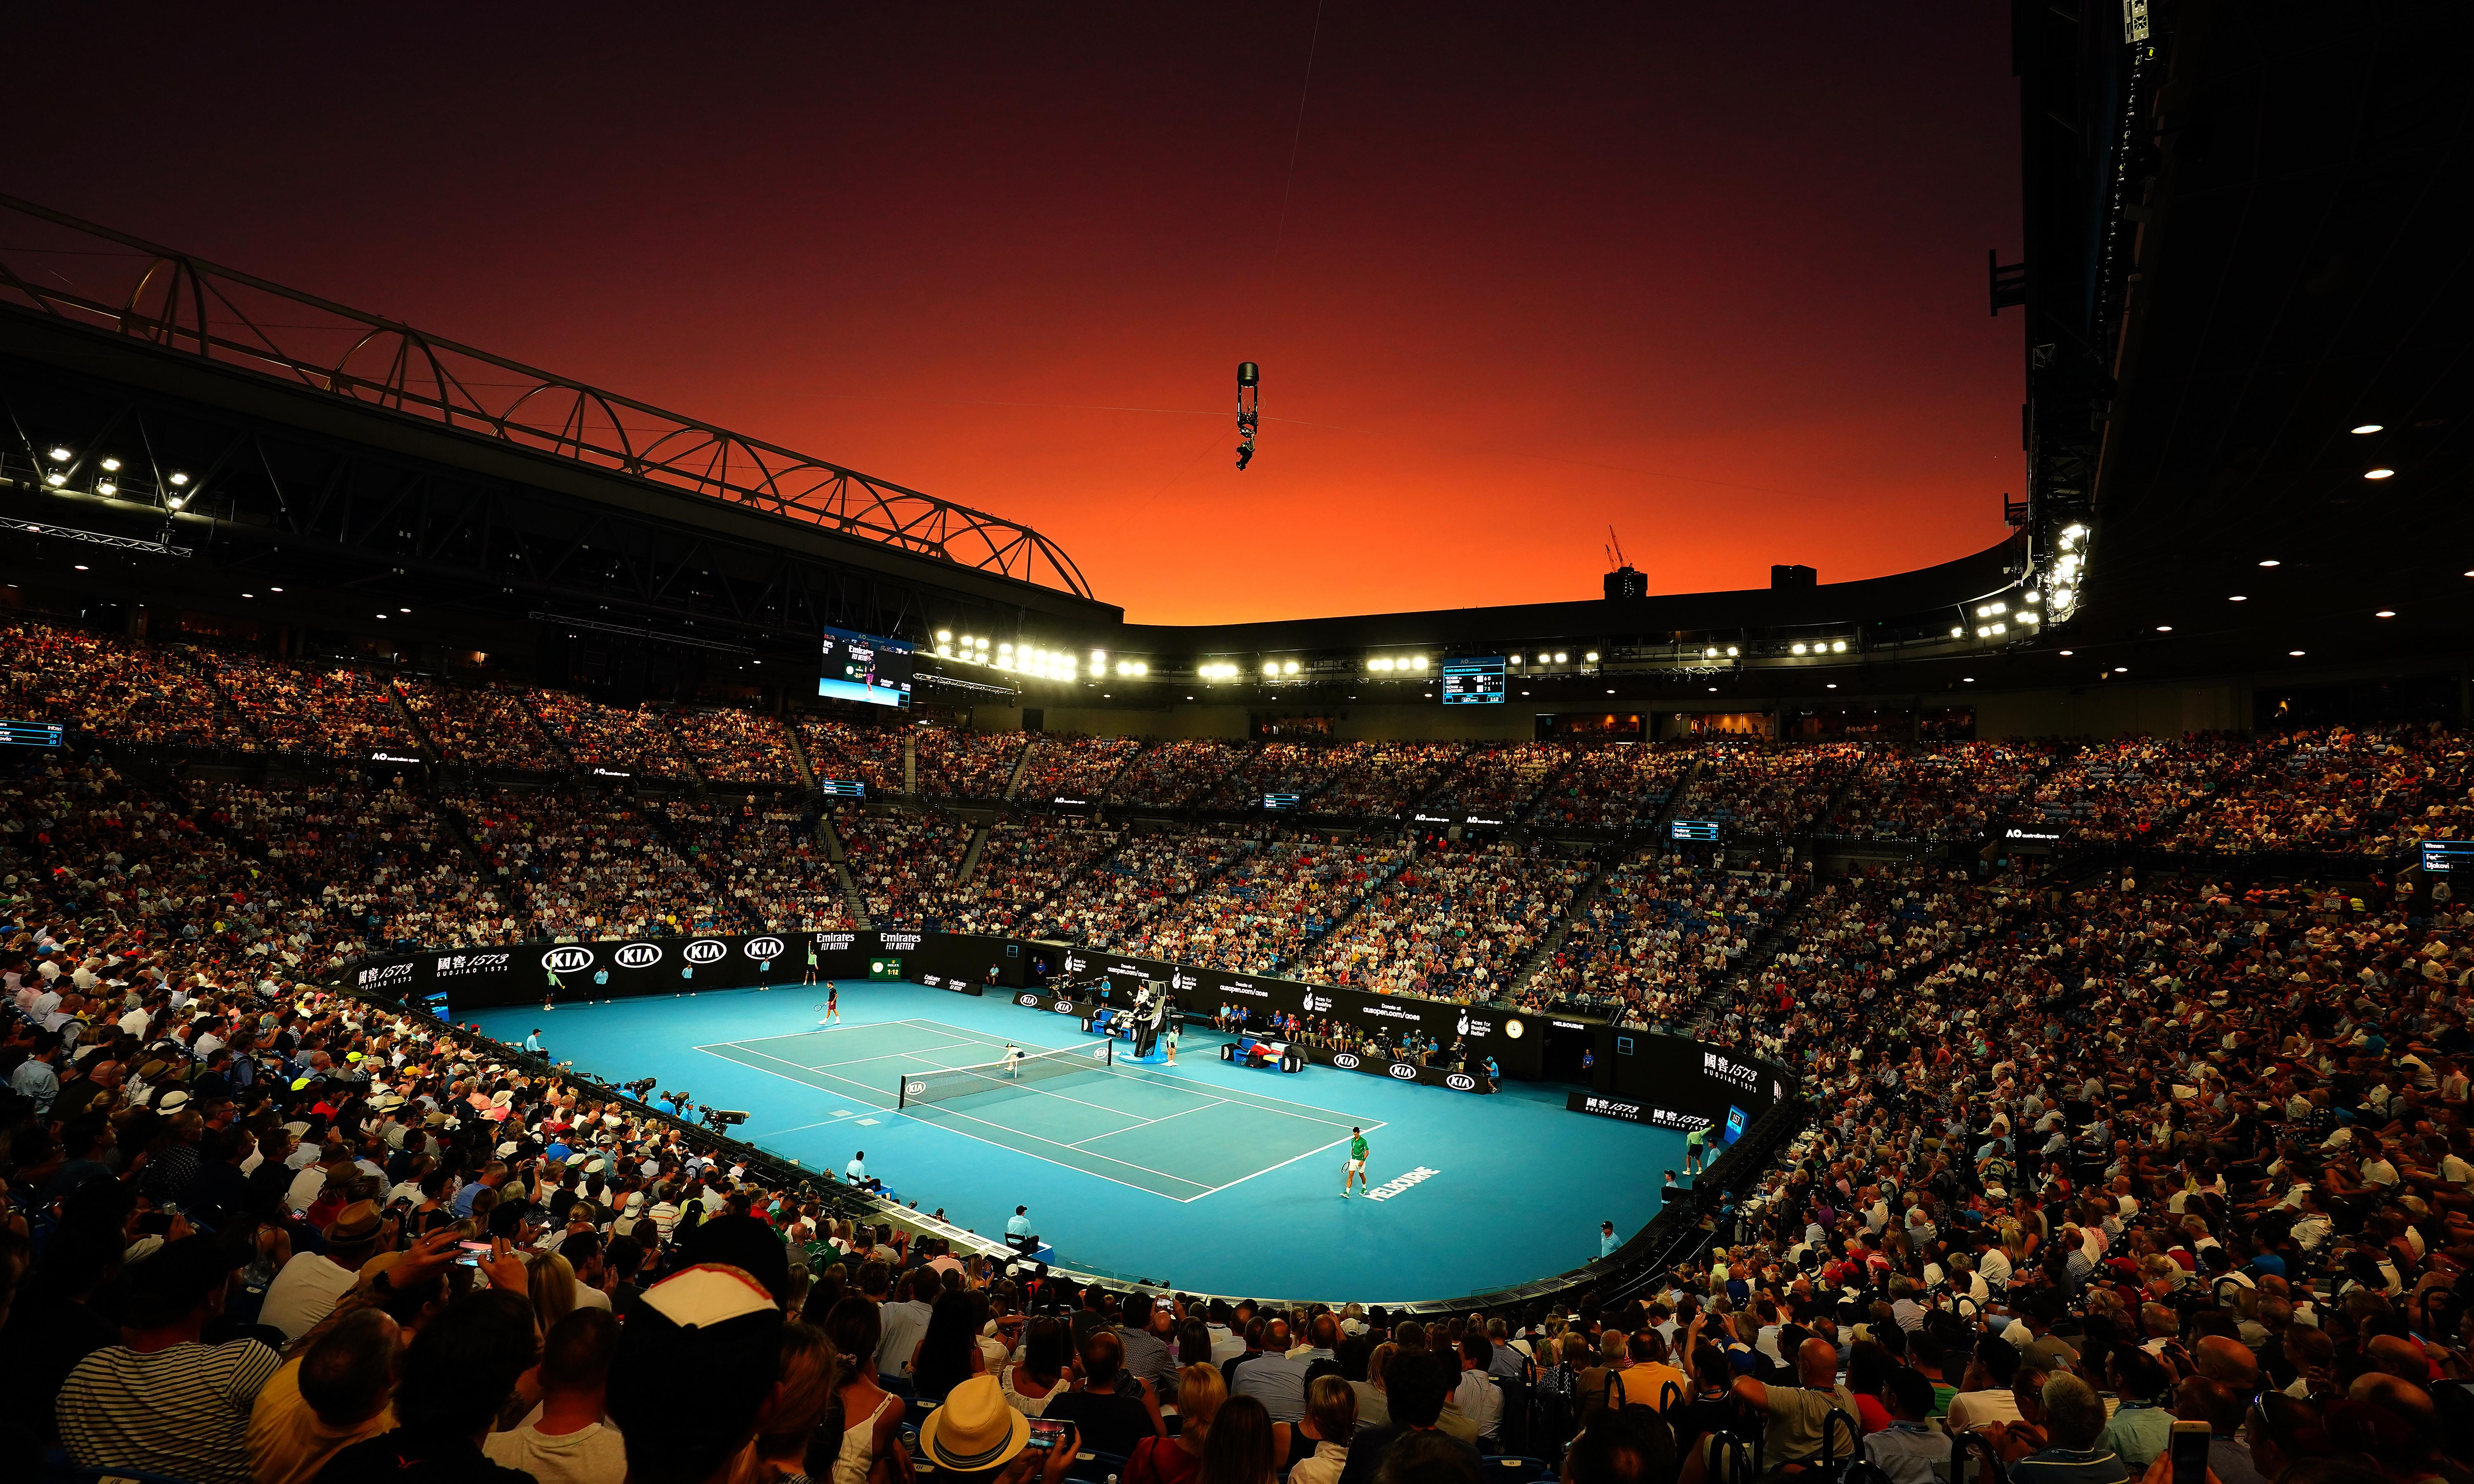 Australian Open 2020: the tournament that tarnished tennis's image